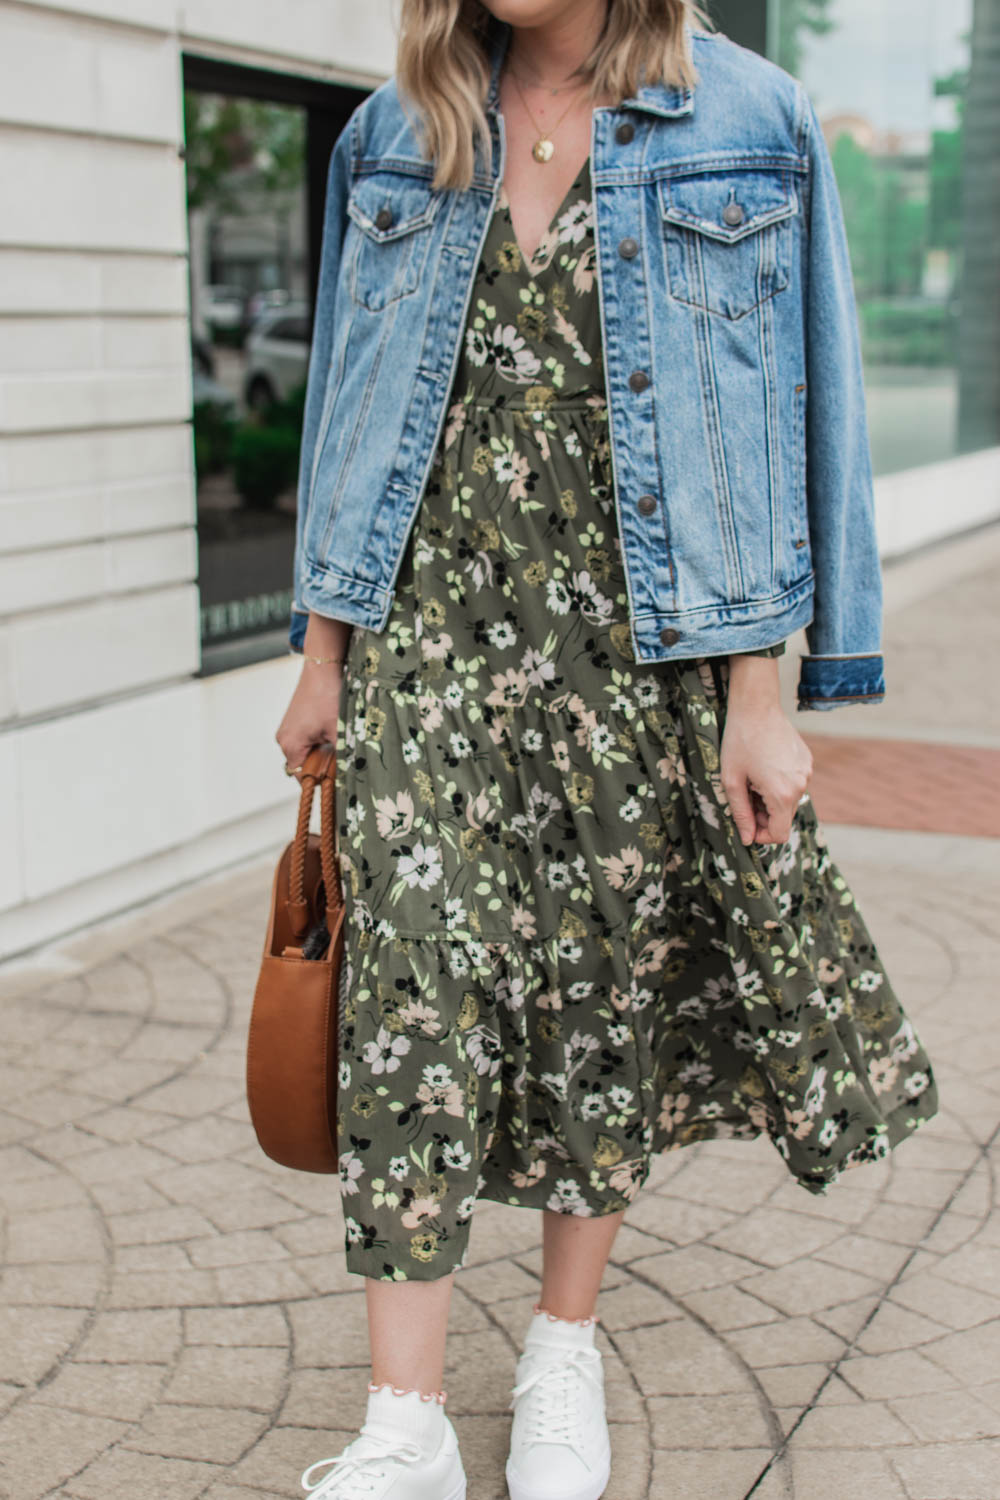 Floral Maxi Dress and Sneakers